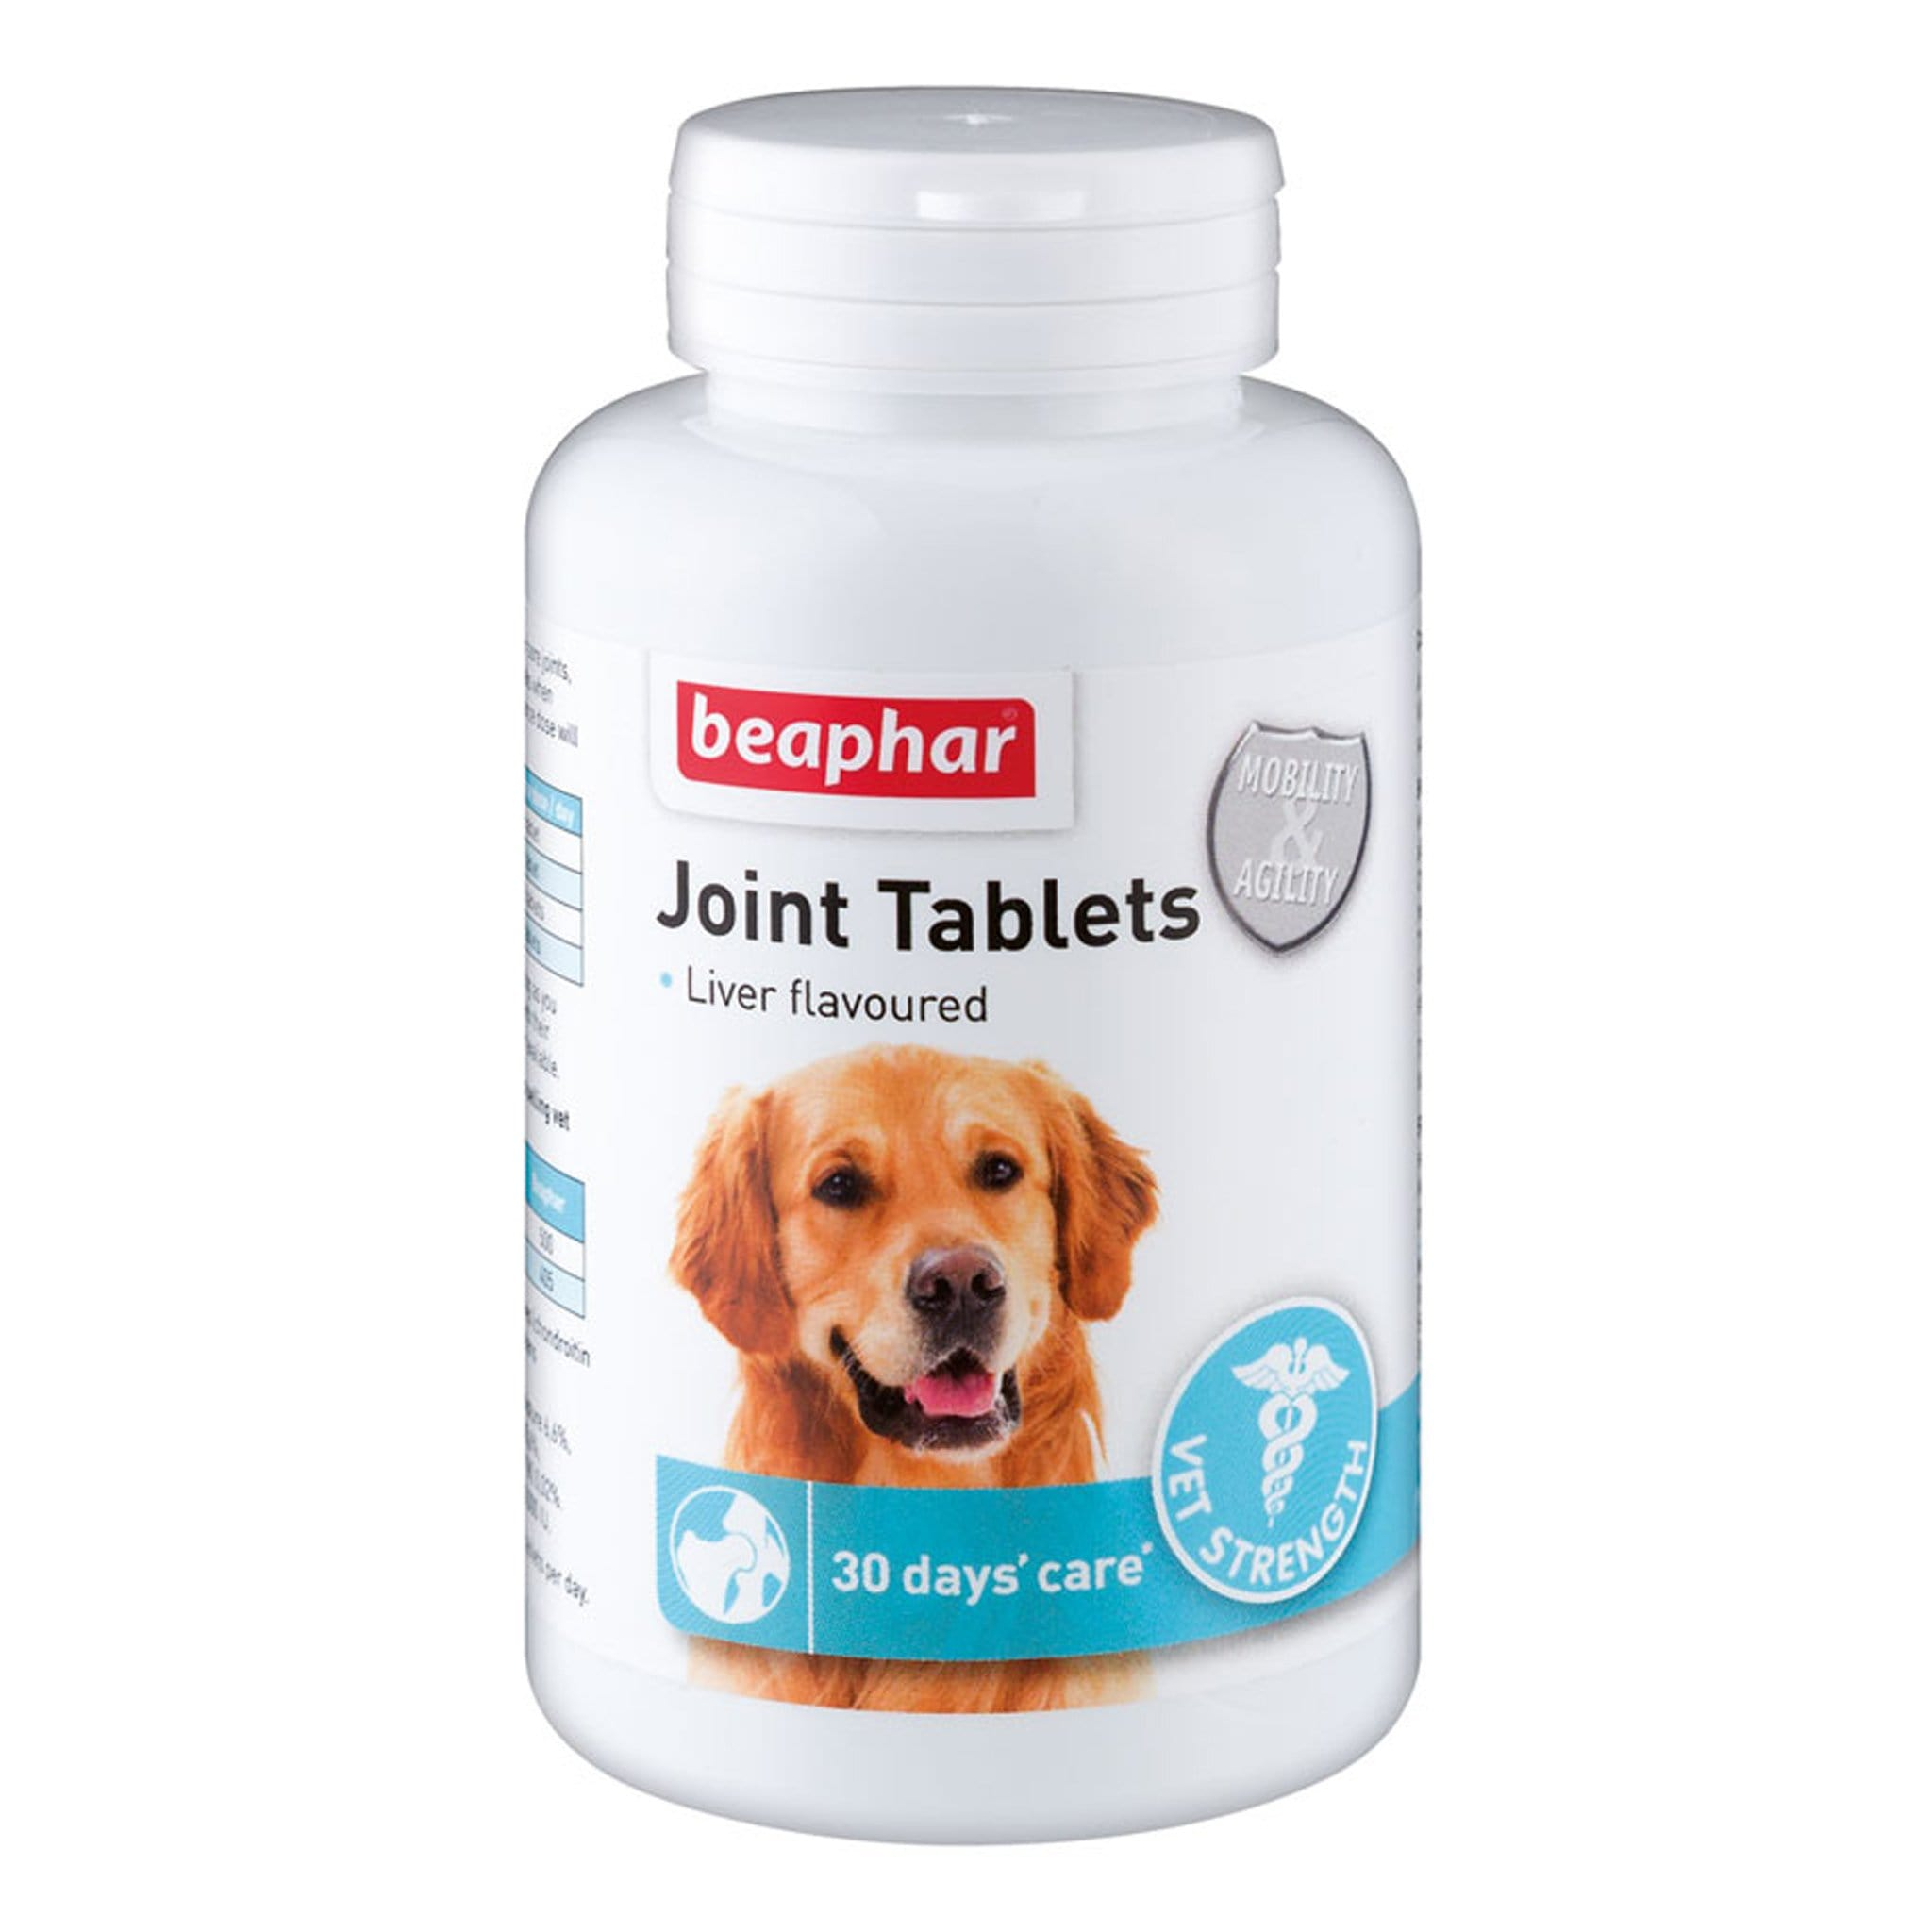 Beaphar Dog Joint Tablets 60 tablets 30 day supply 23677